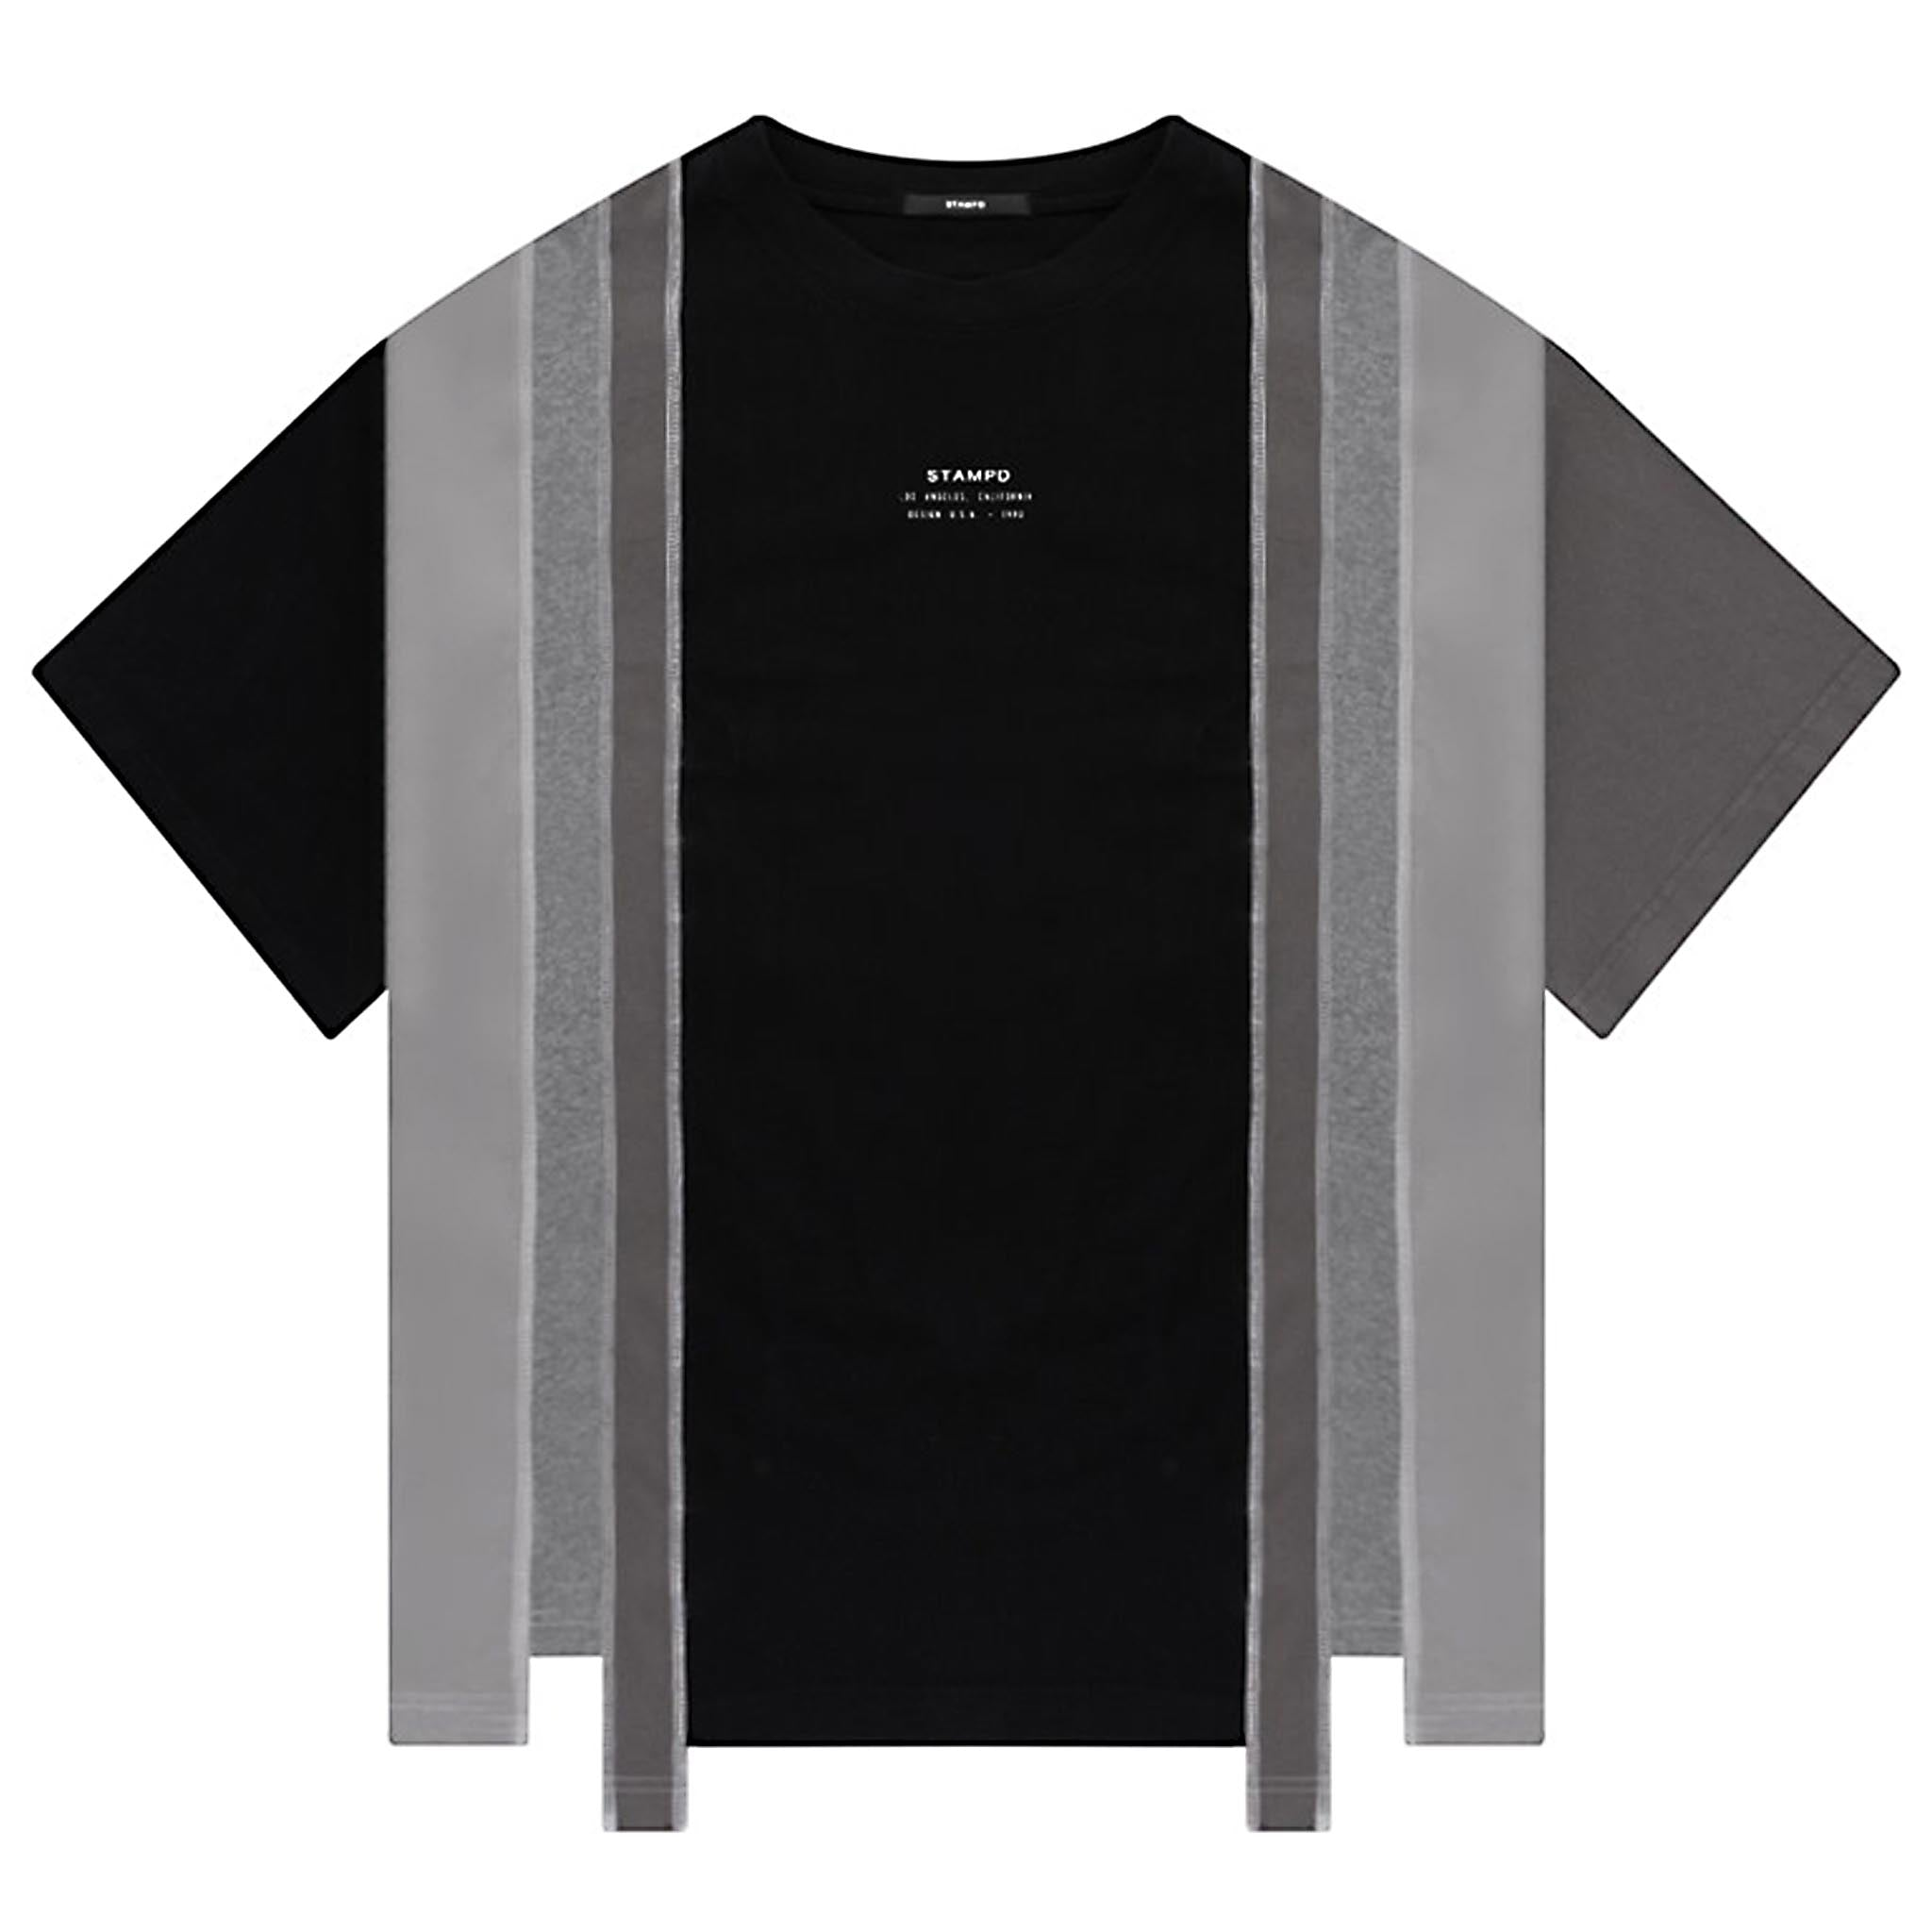 STAMPD Reconstructed Tee Black